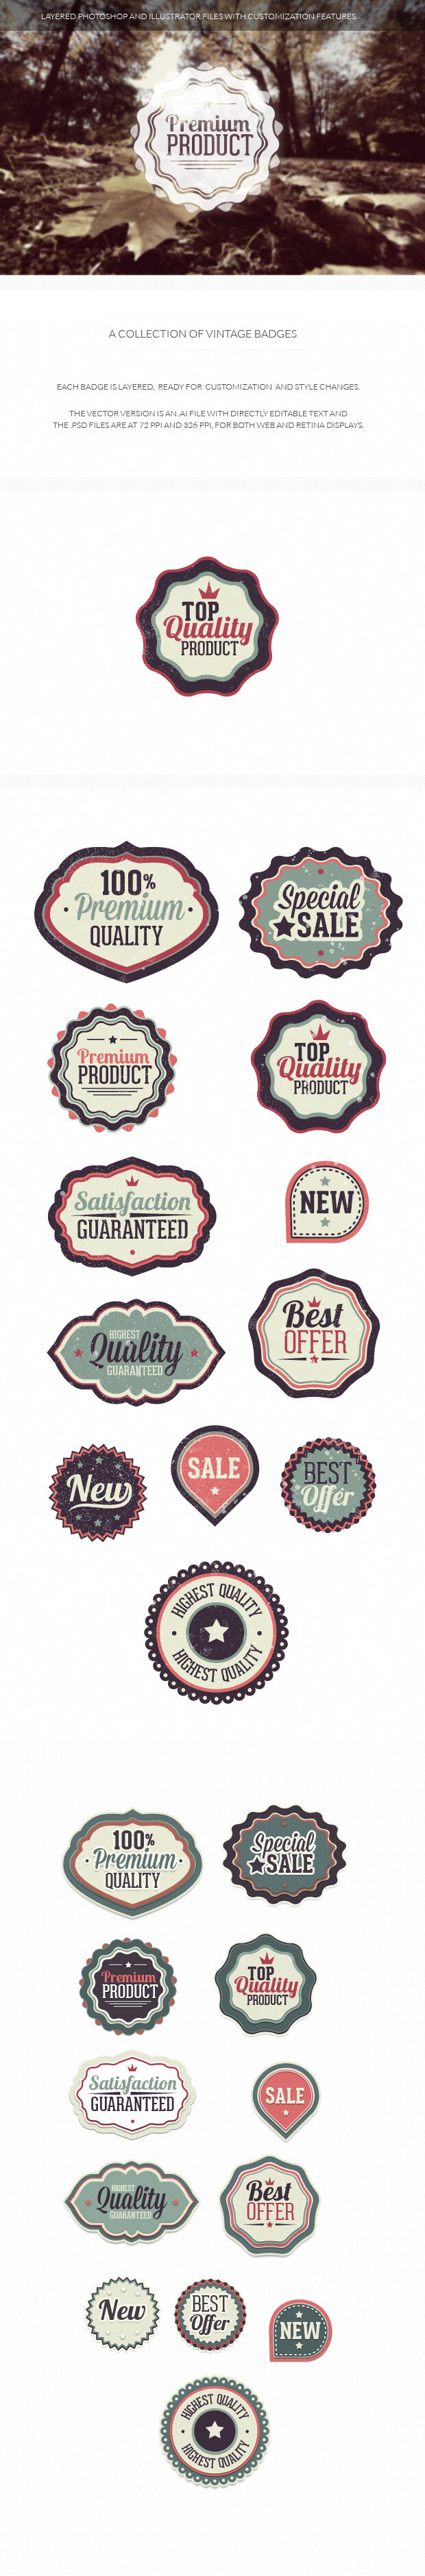 200+ Super Premium Badges 34